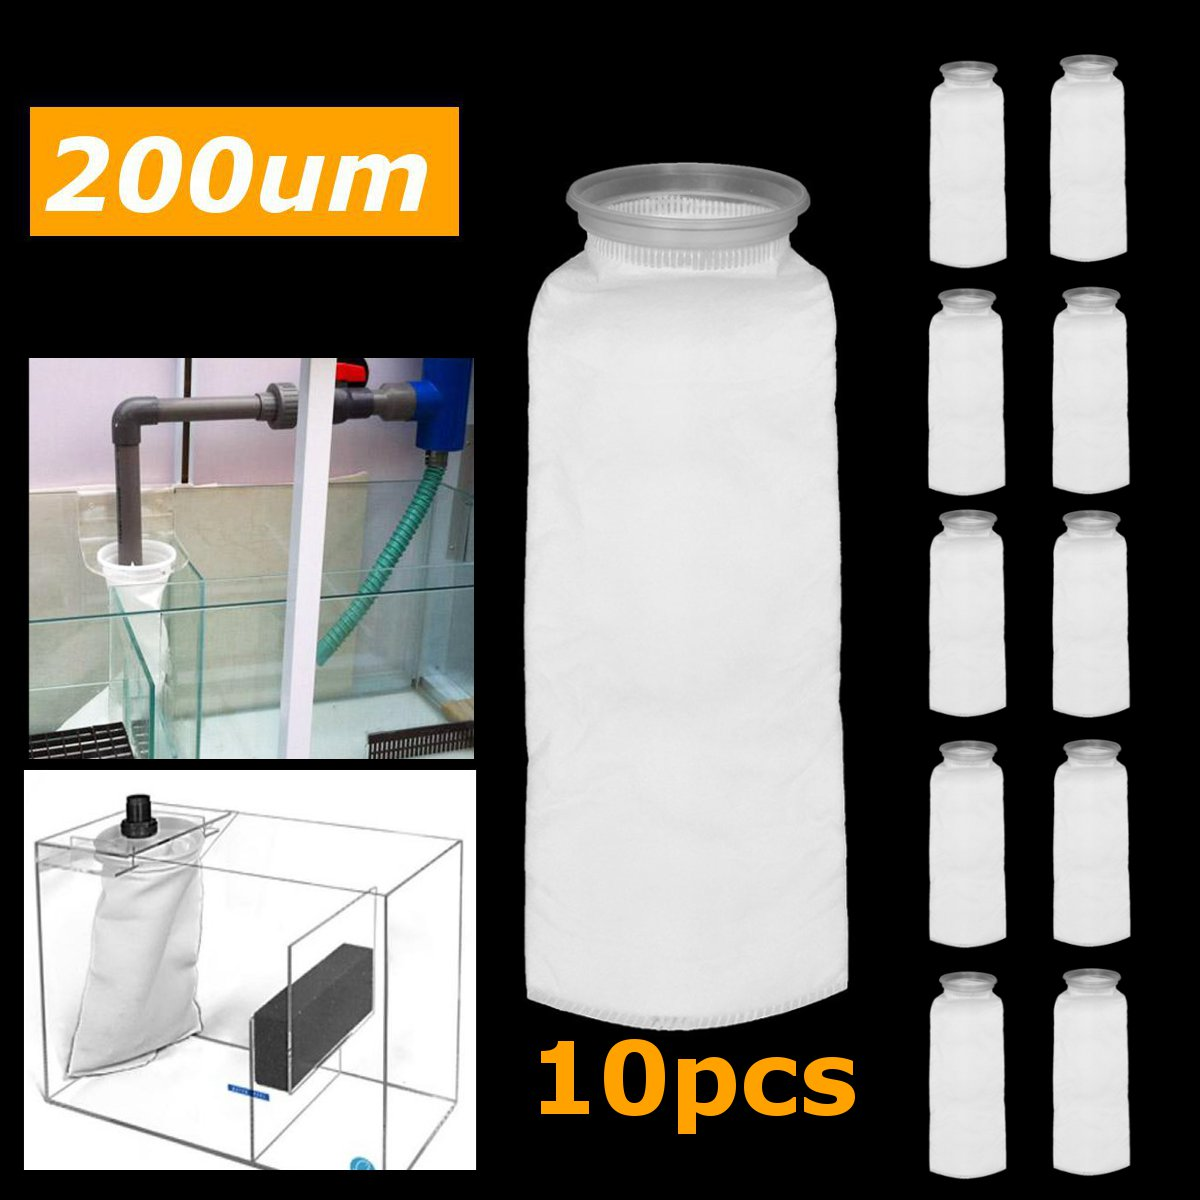 10pcs/set Fish Tank Filter Mesh Bag 4 Inch Fish Aquarium Marine Sump Filter Pre Filter Sock Bag Water Purifier Parts Aquarium